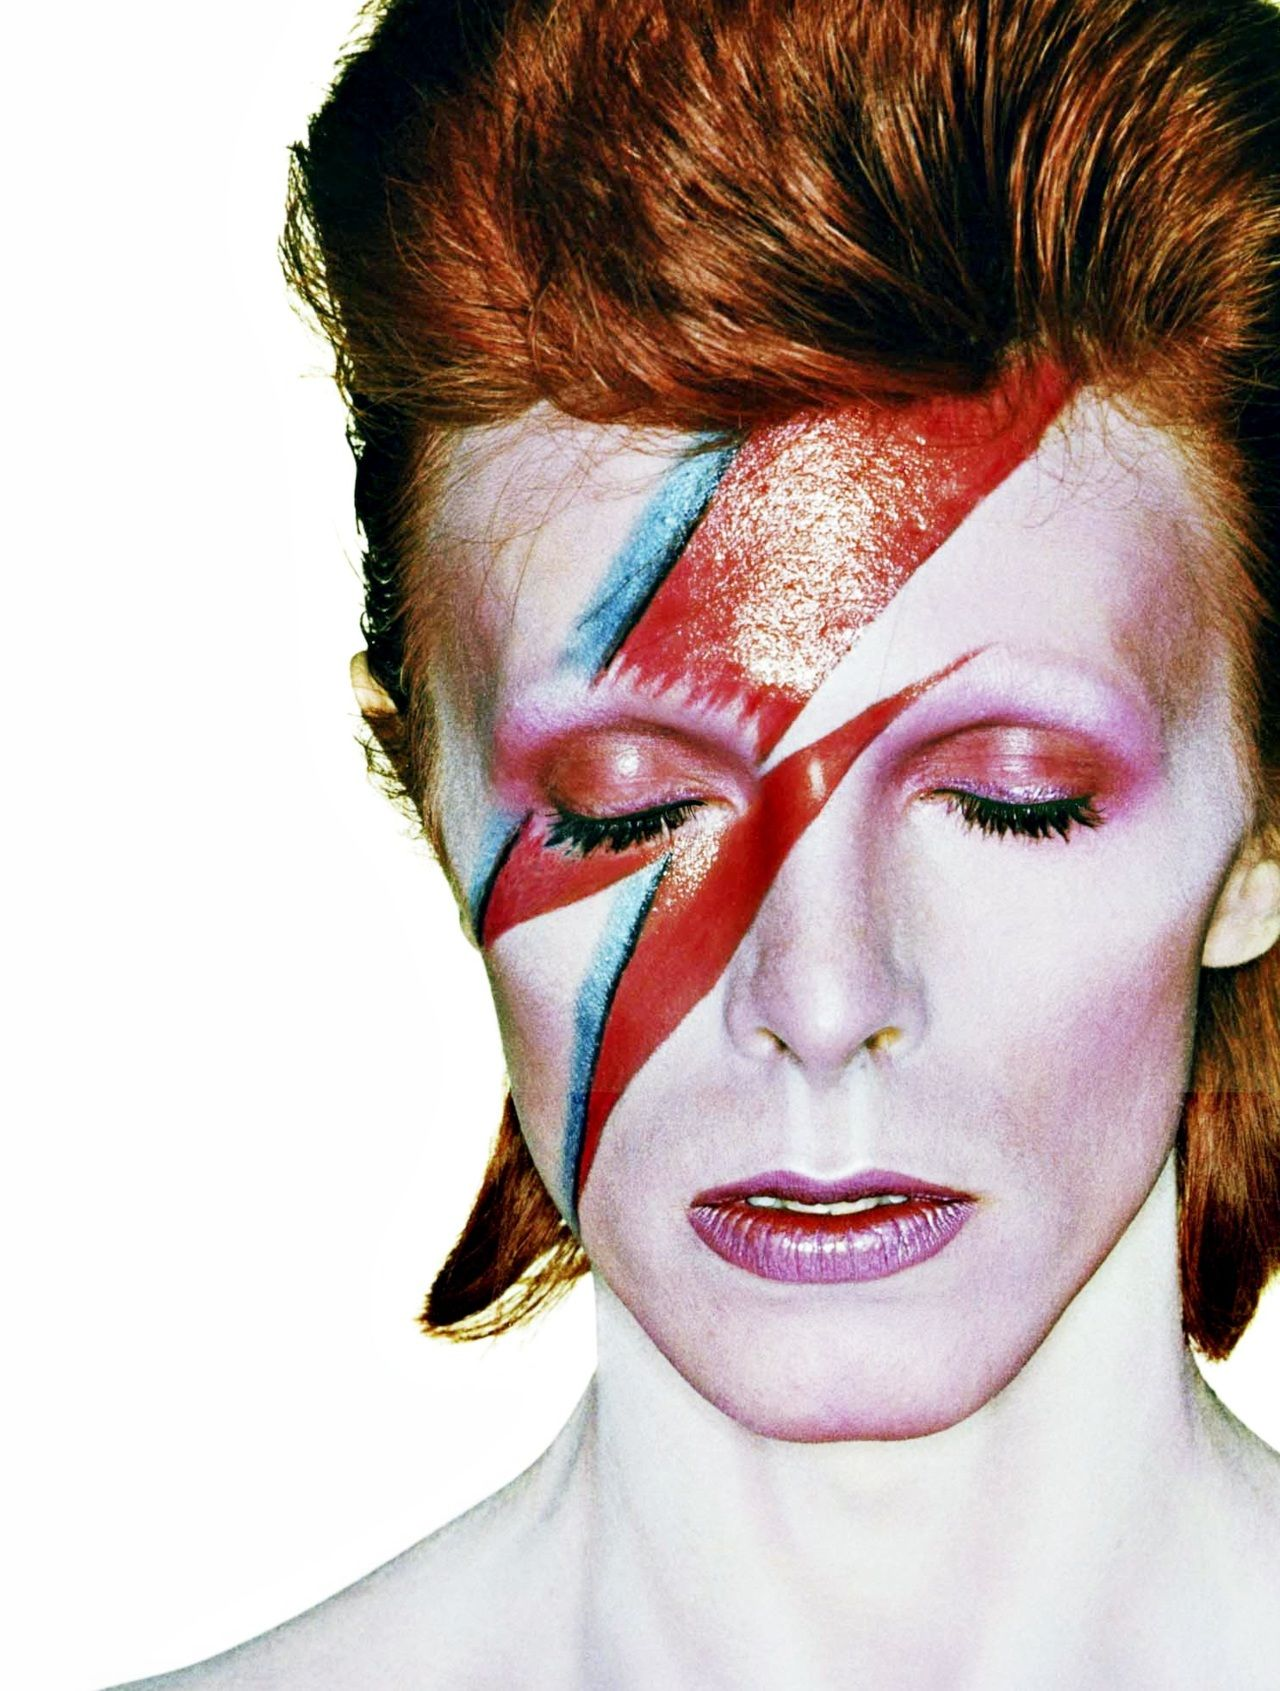 david bowie aladdin sane era - photo #14